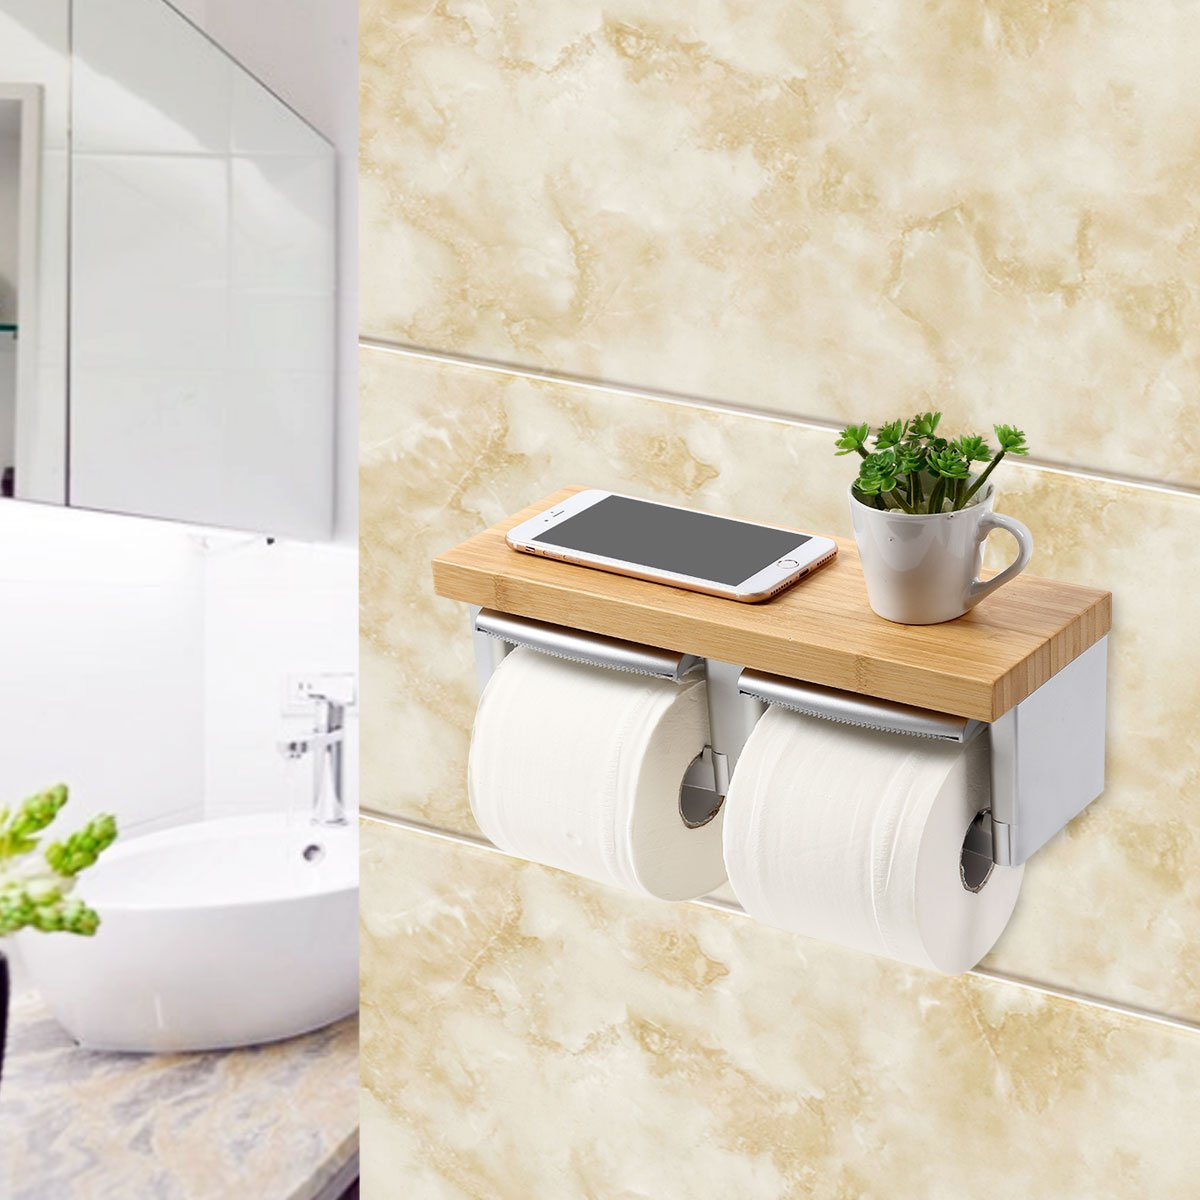 MEIBEI Toilet Paper Holder with Shelf, Double Toilet Roll Holder, Wall Mount Roll Paper Hanger with Mobile Phone Storage by MEIBEI